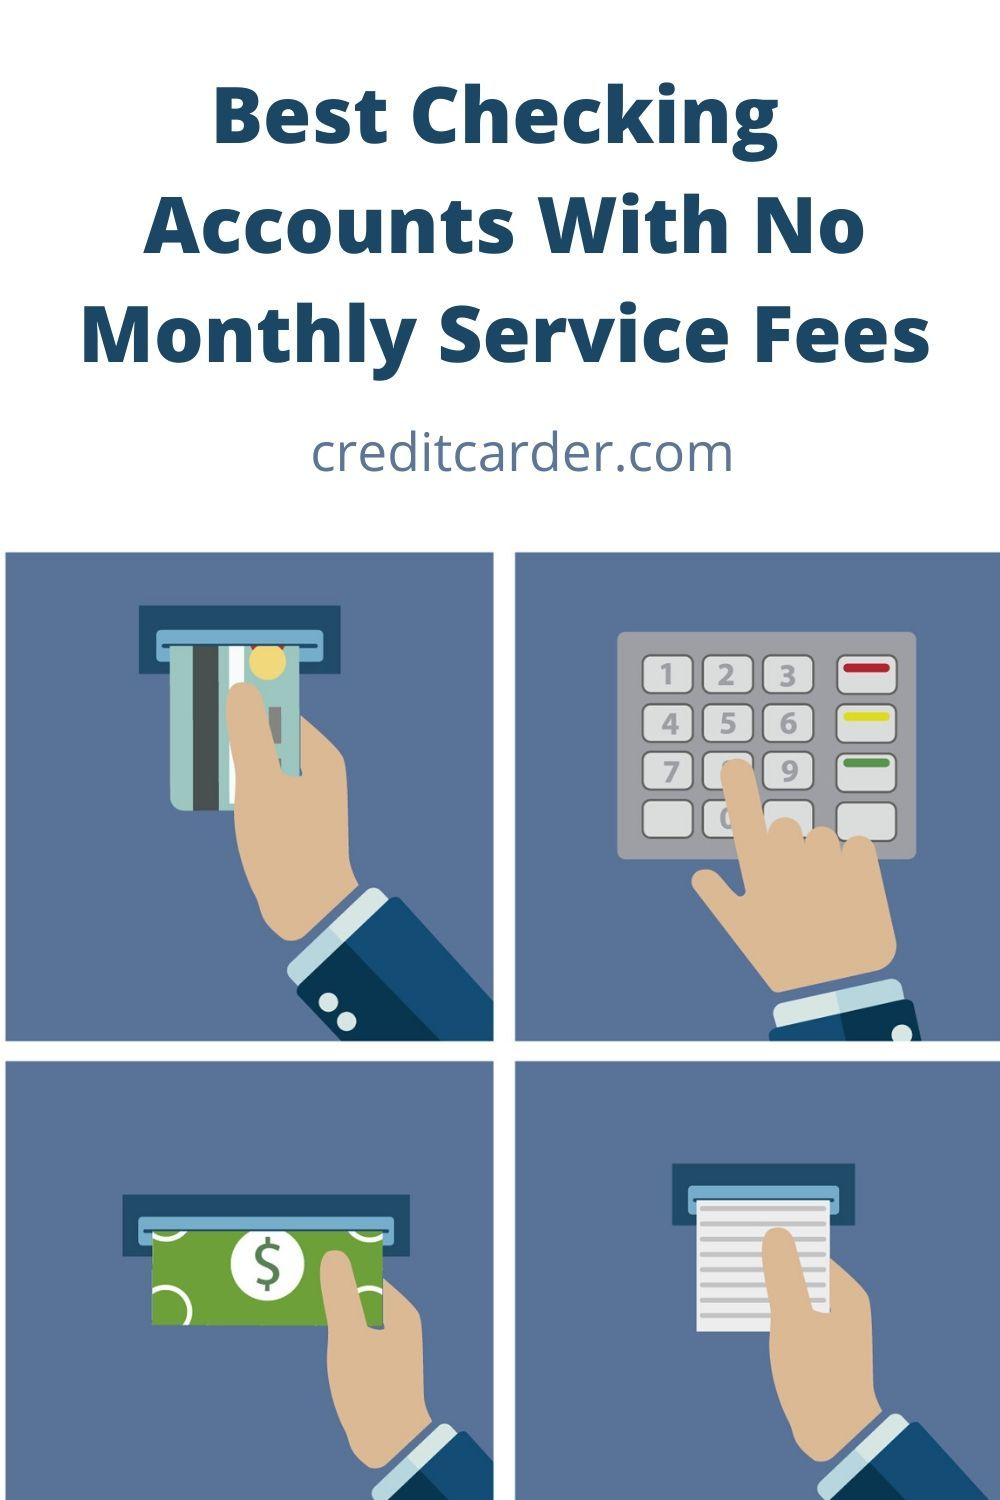 6 Best Checking Accounts With No Monthly Service Fees in